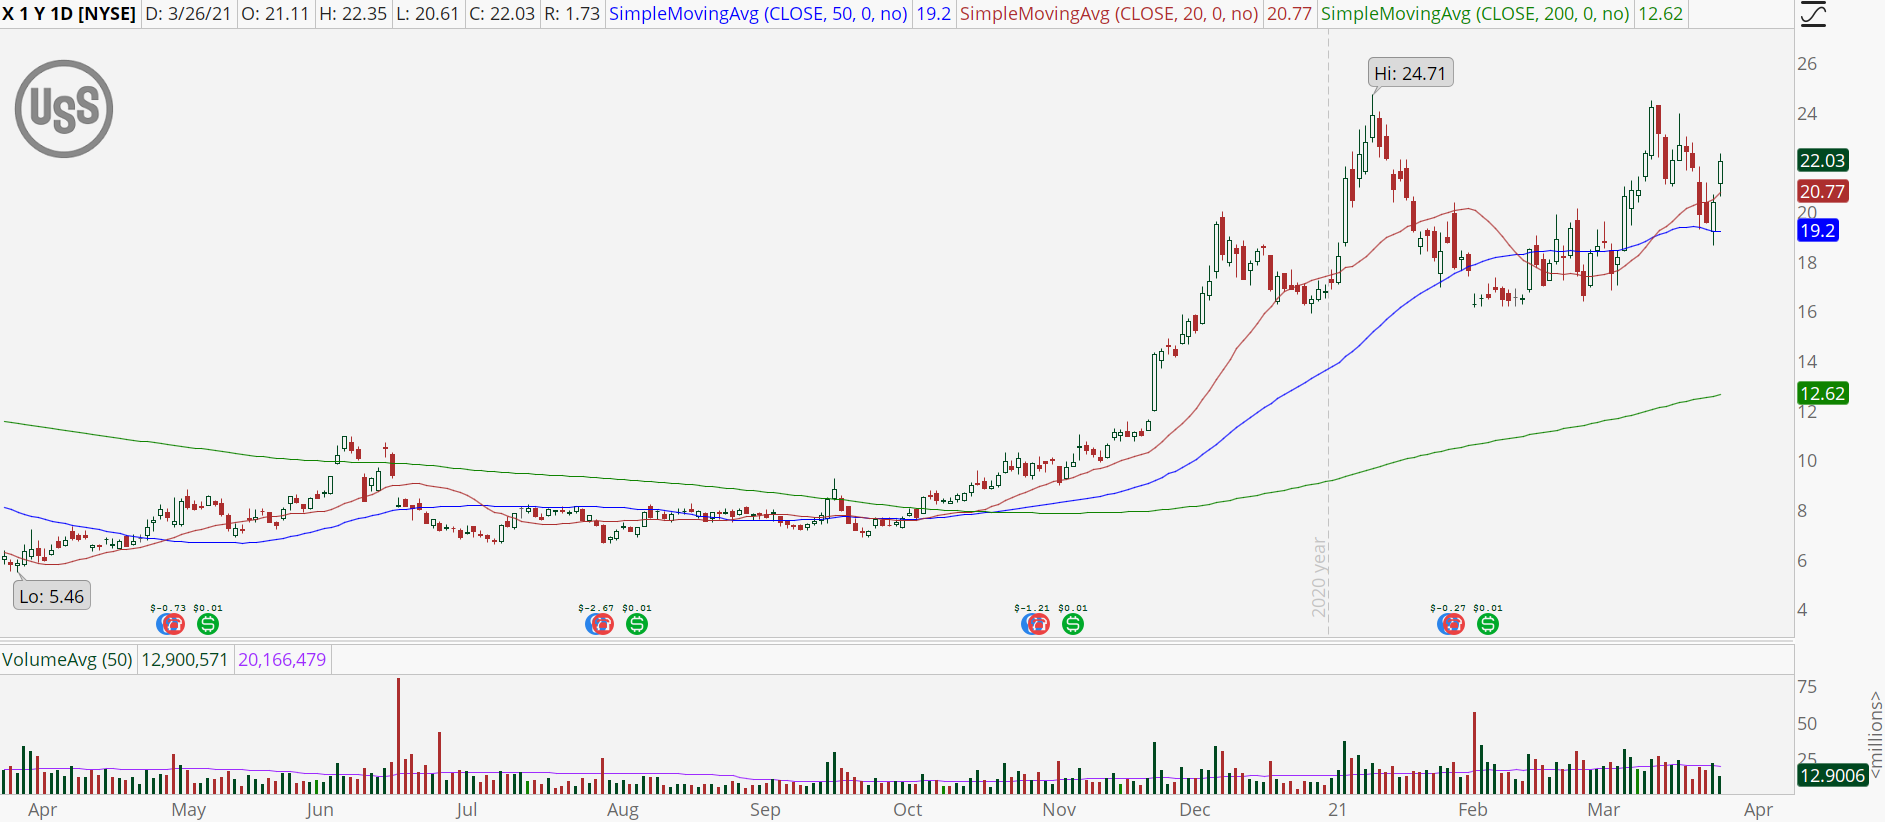 United States Steel (X) stock with bull retracement